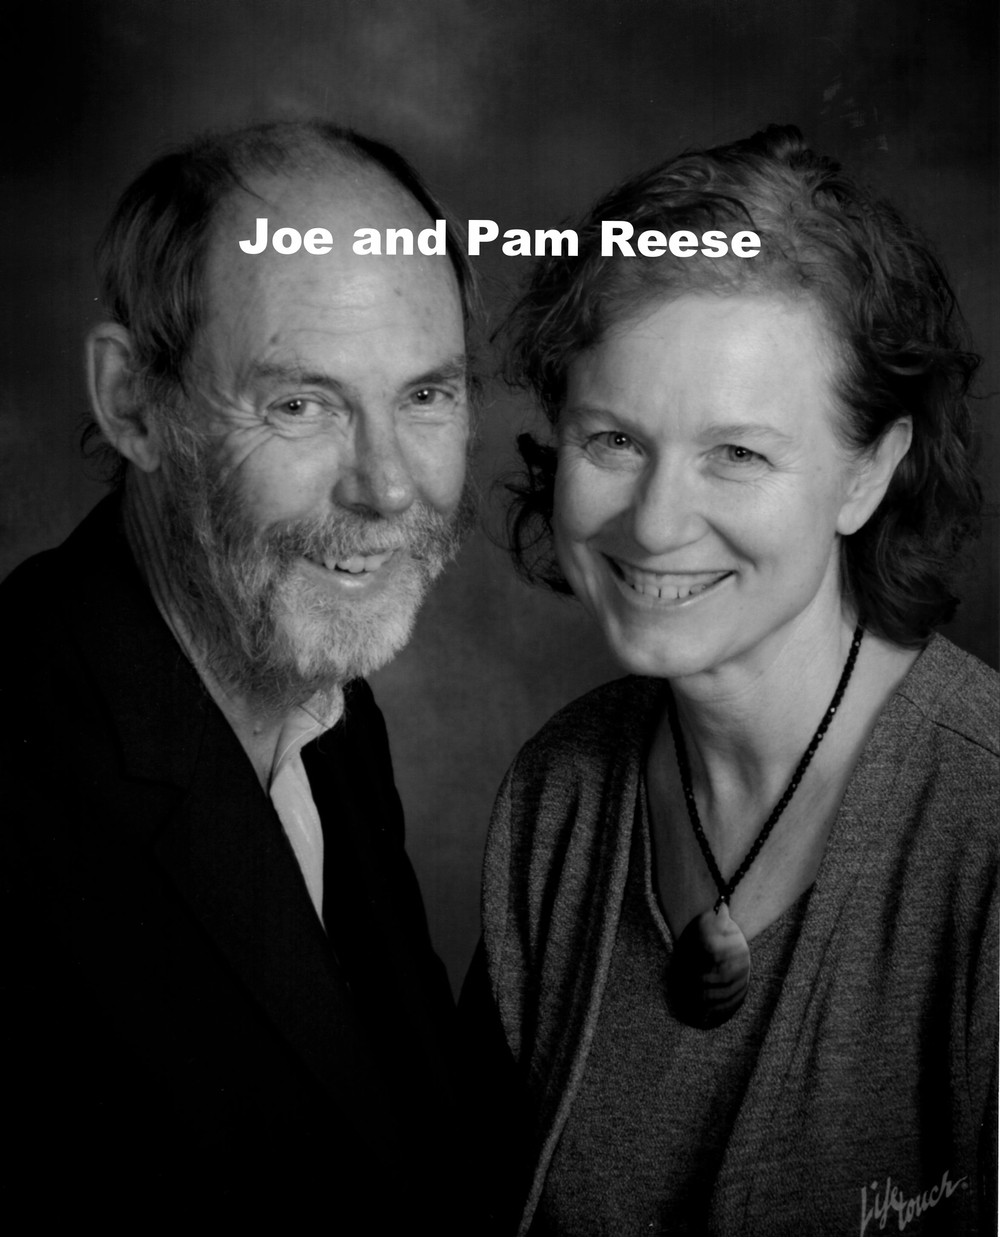 Joe and Pam Reese